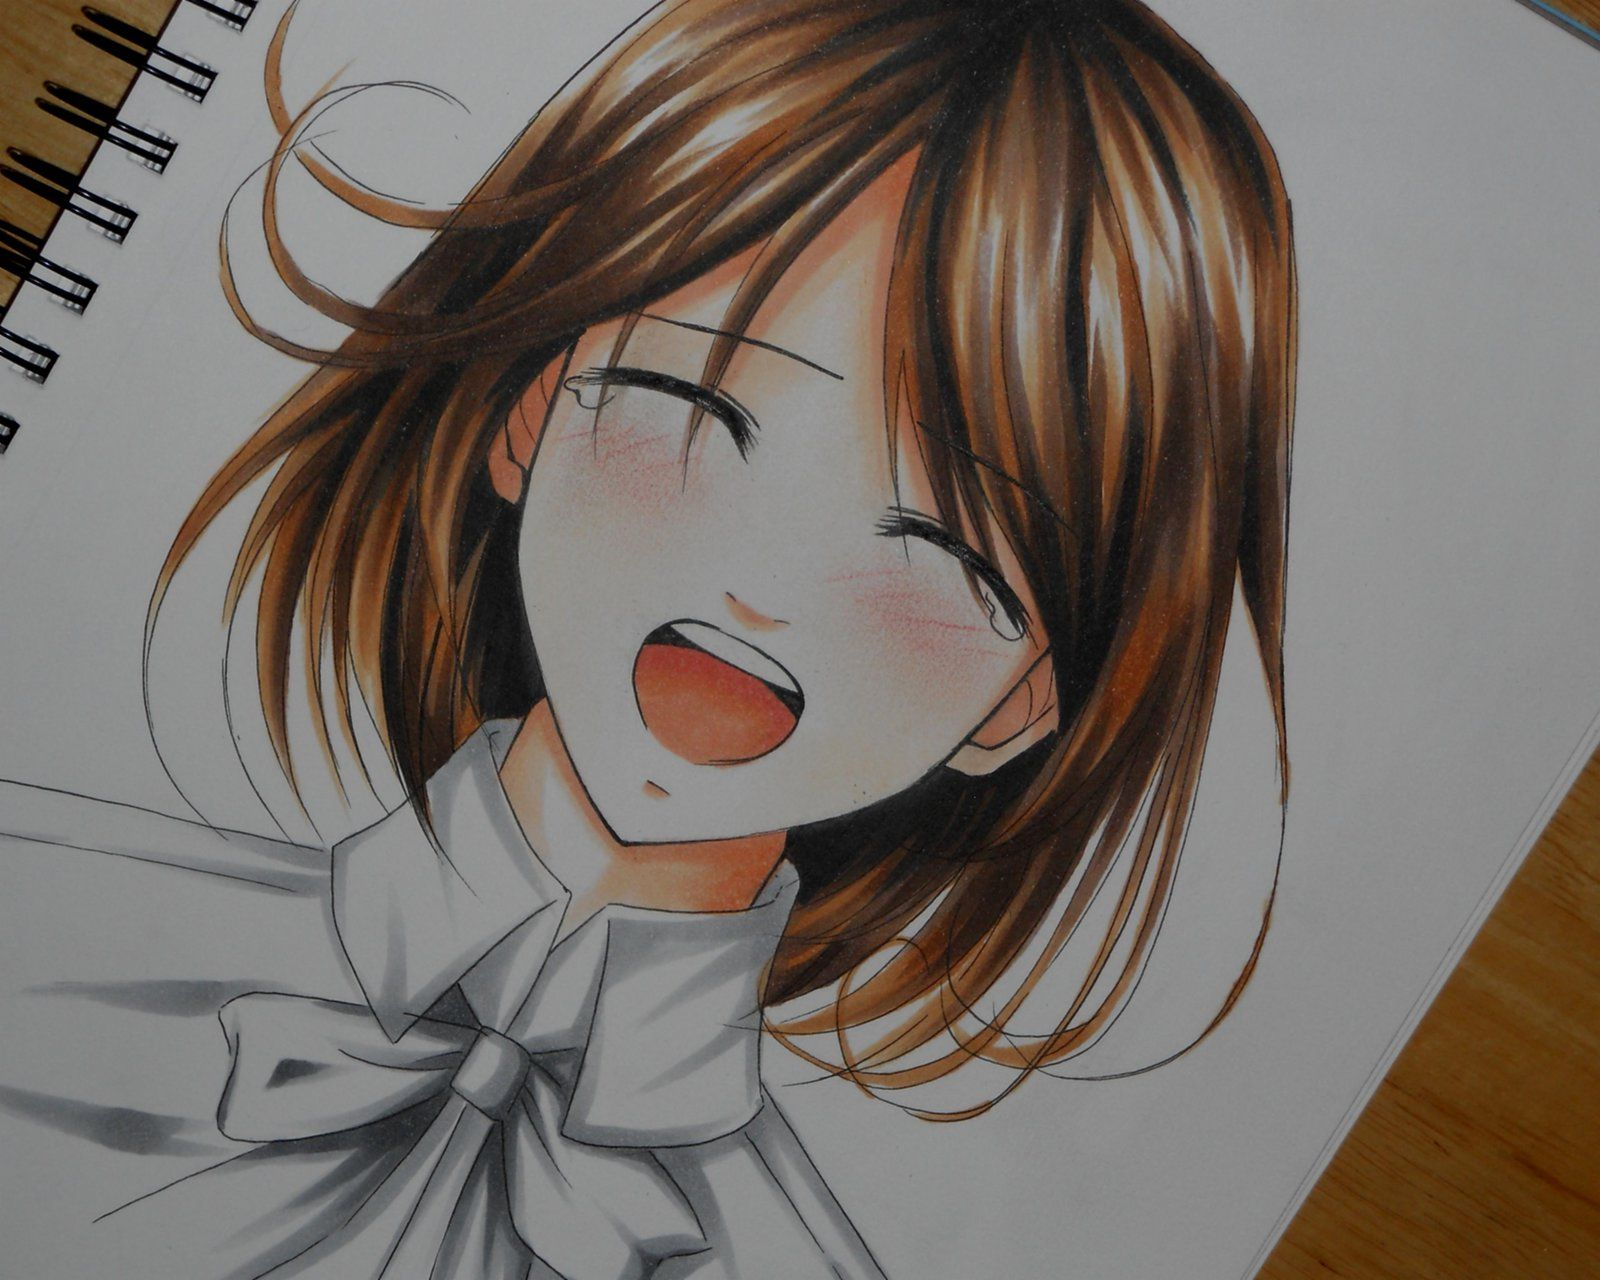 happy crying anime face dromfhd.top Drawing